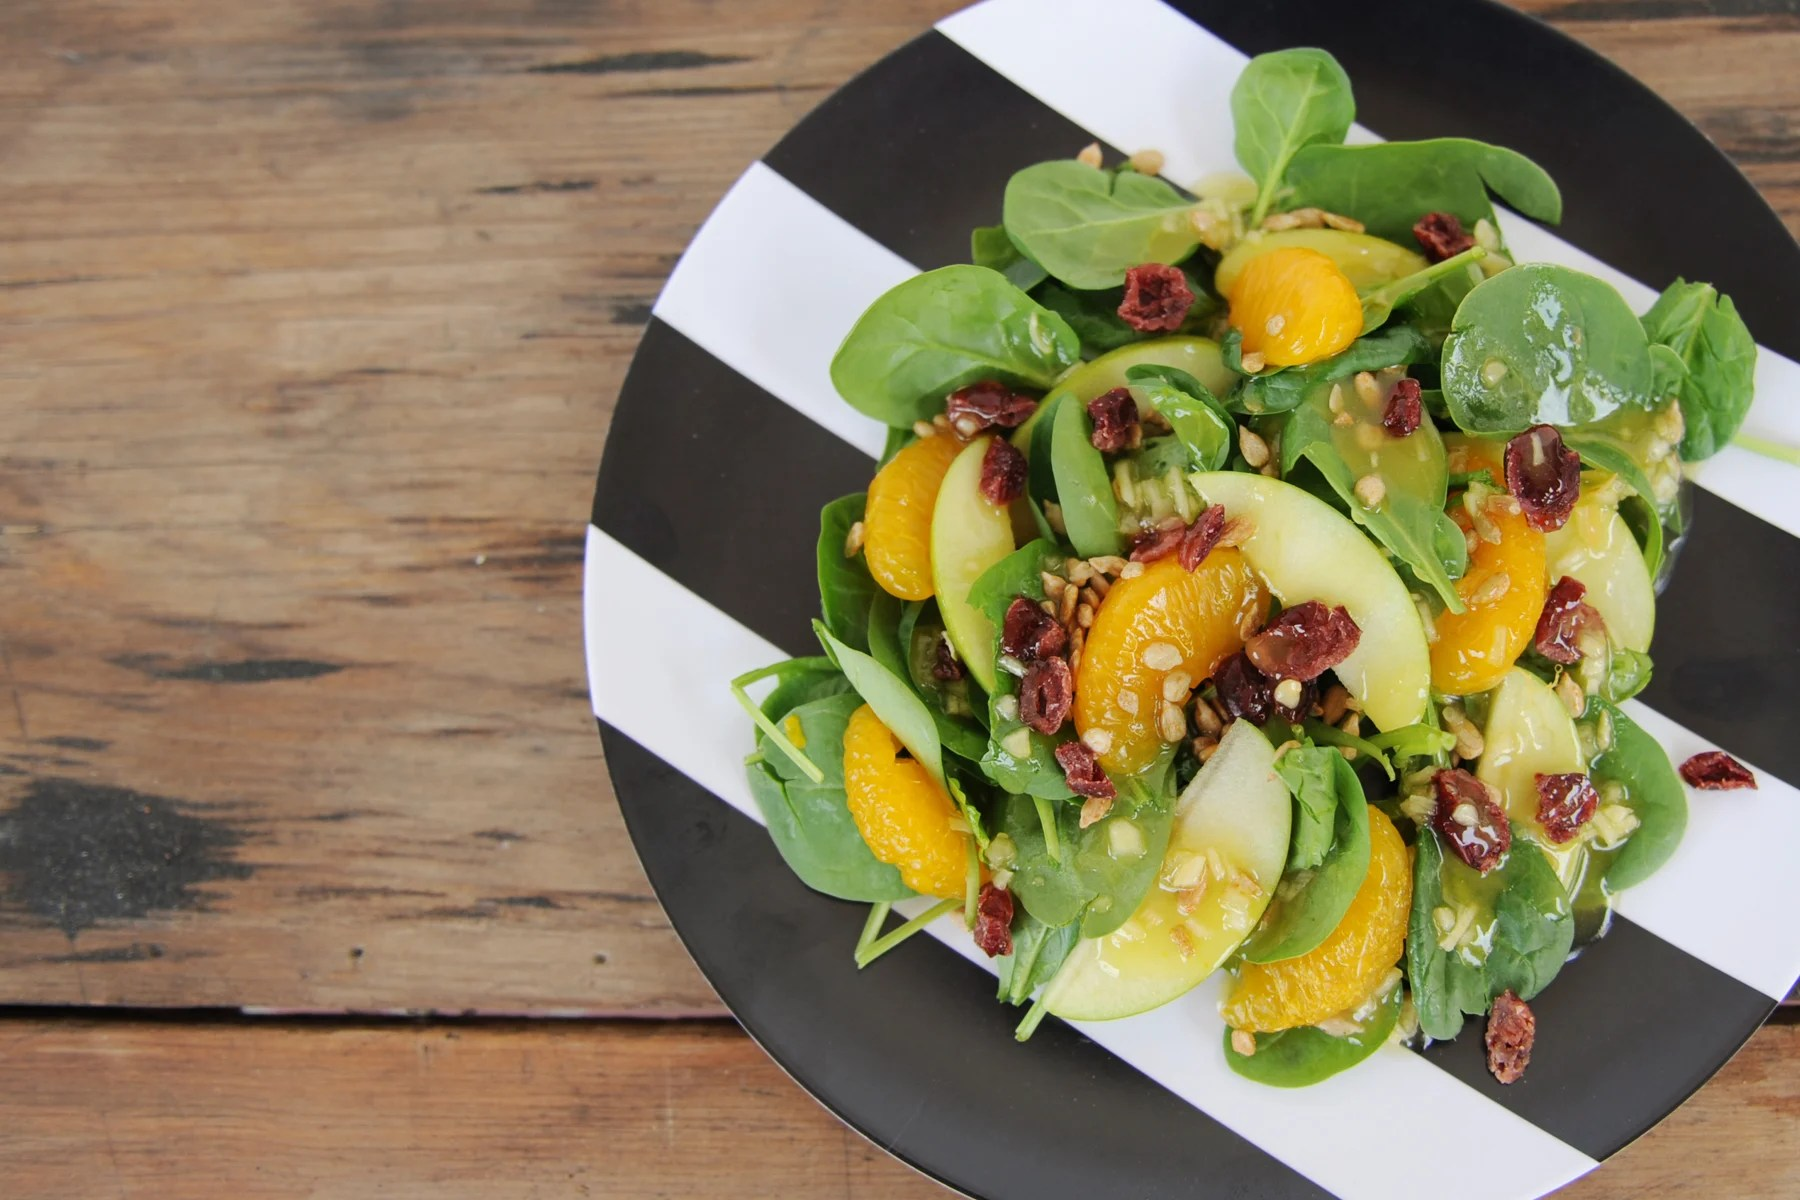 Spinach and Citrus Salad Recipe